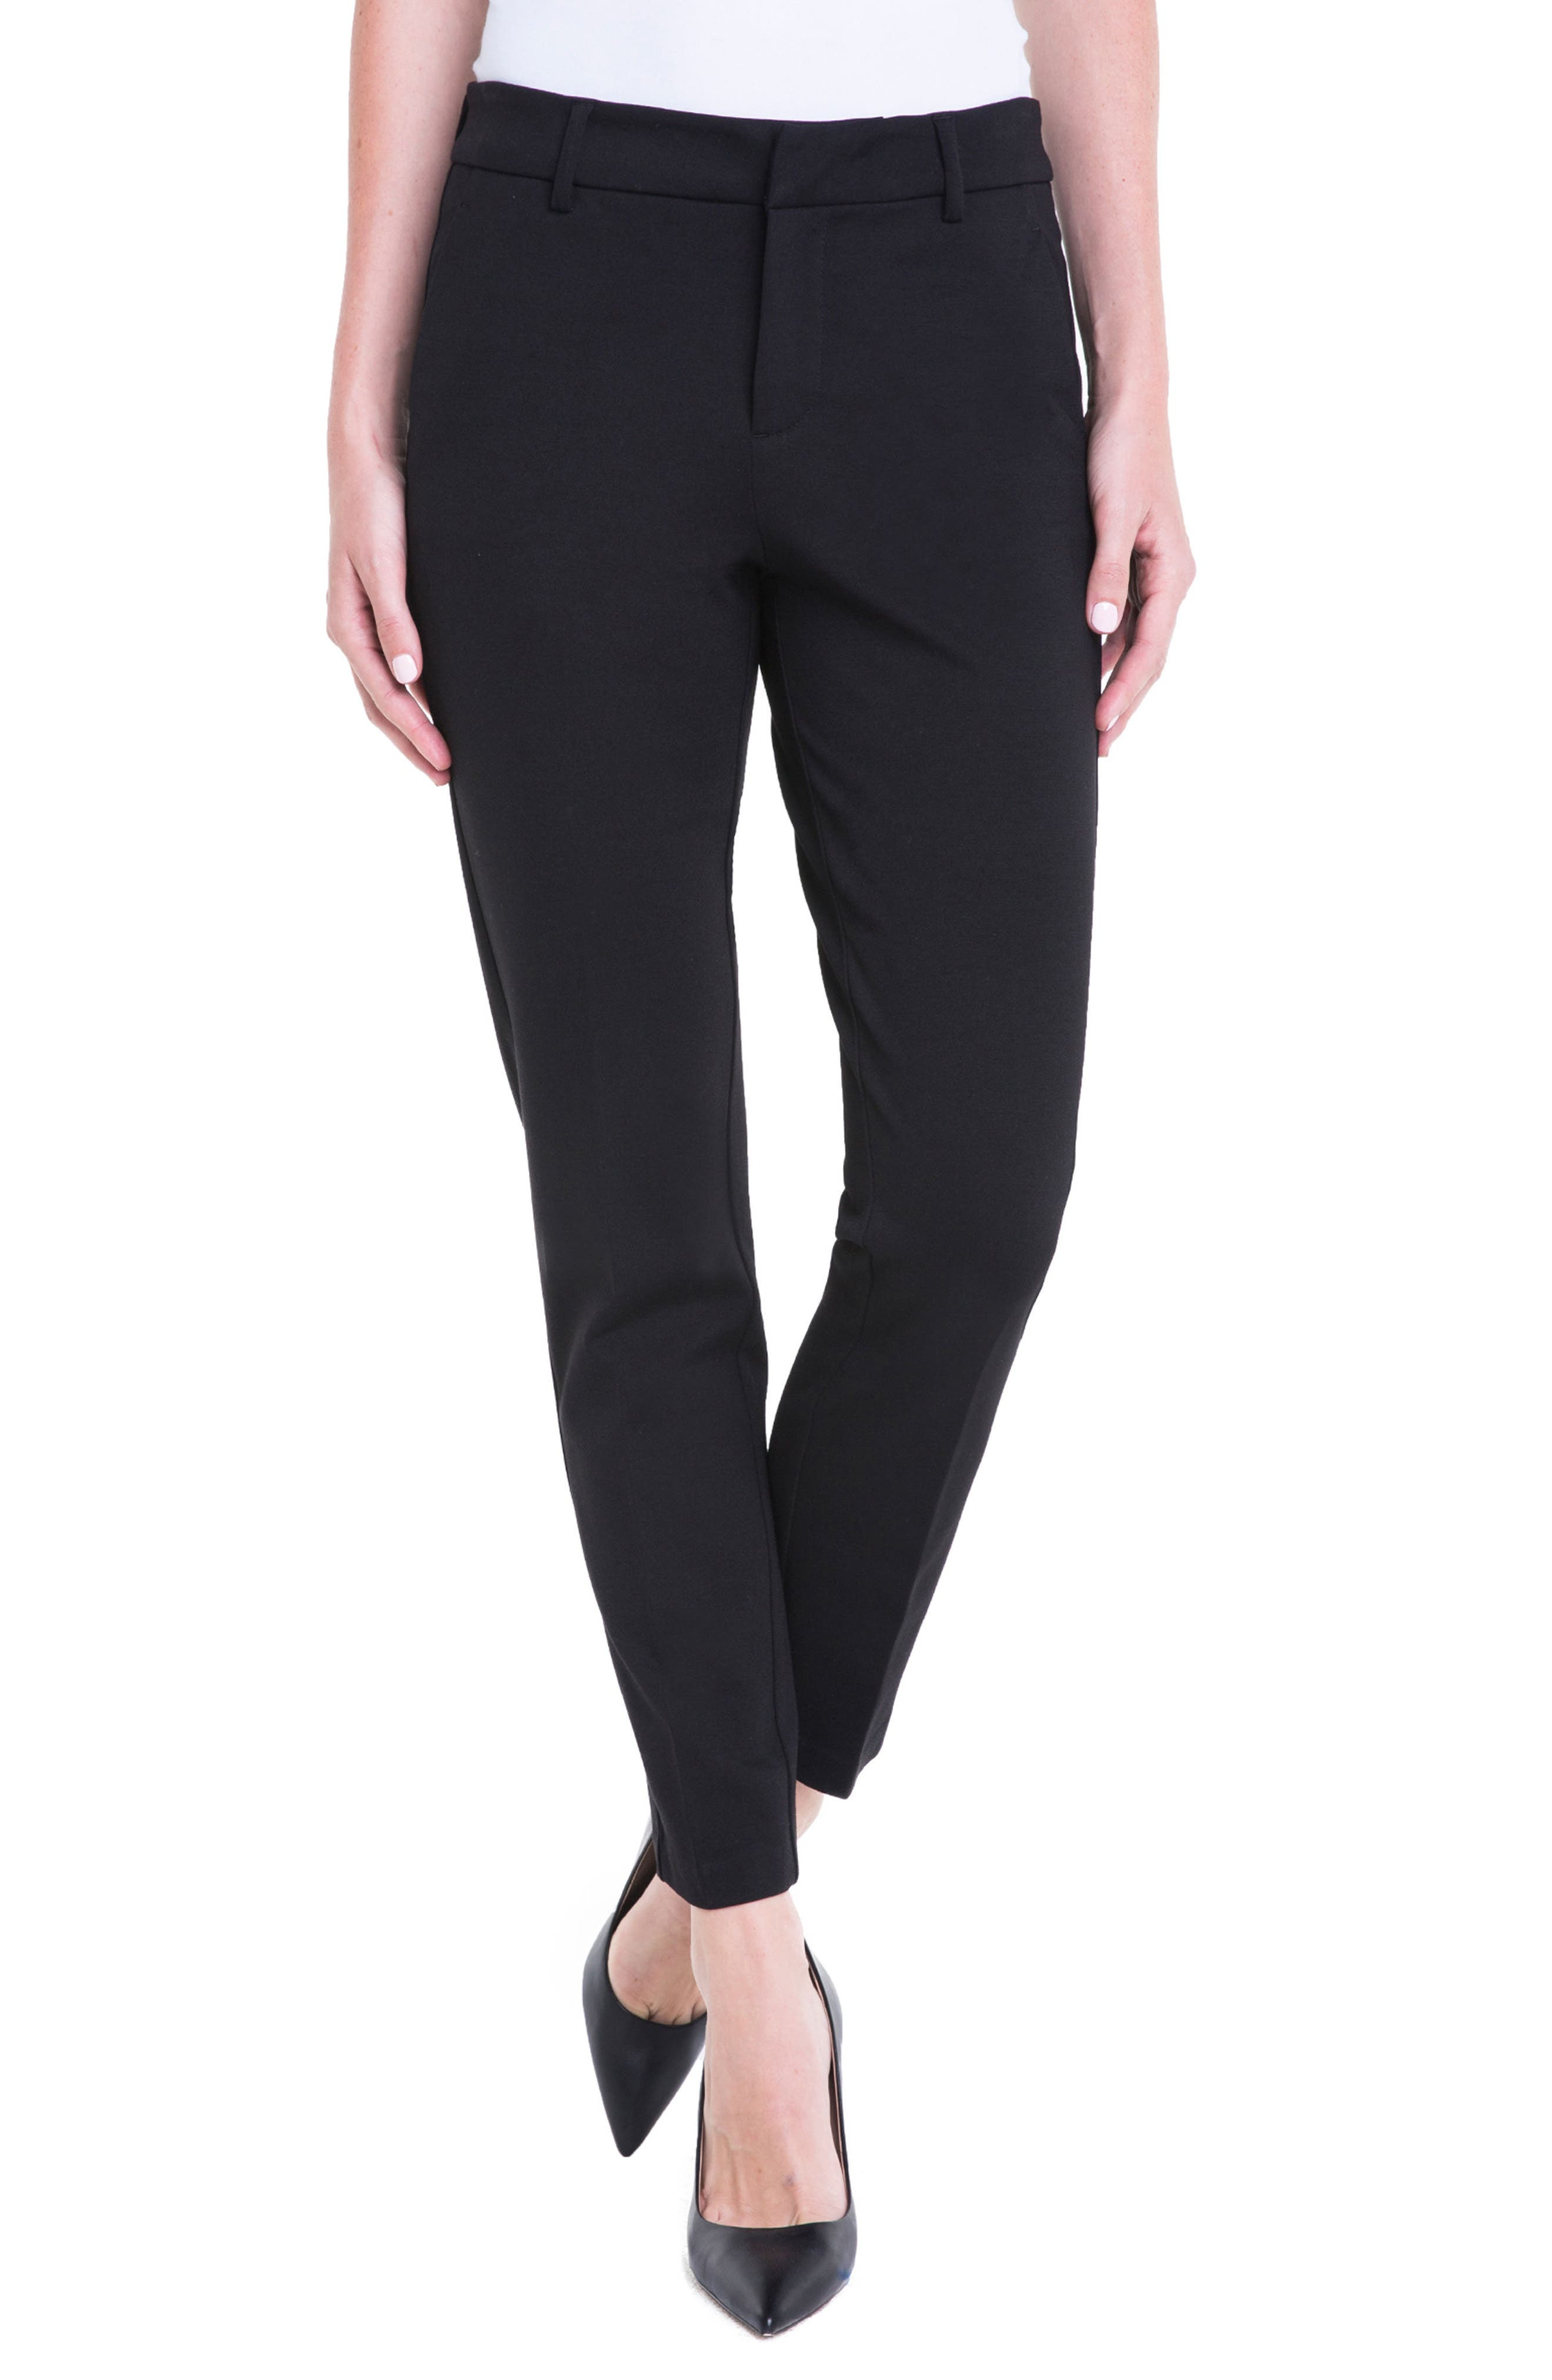 Liverpool Jeans Company Kelsey Knit Trousers